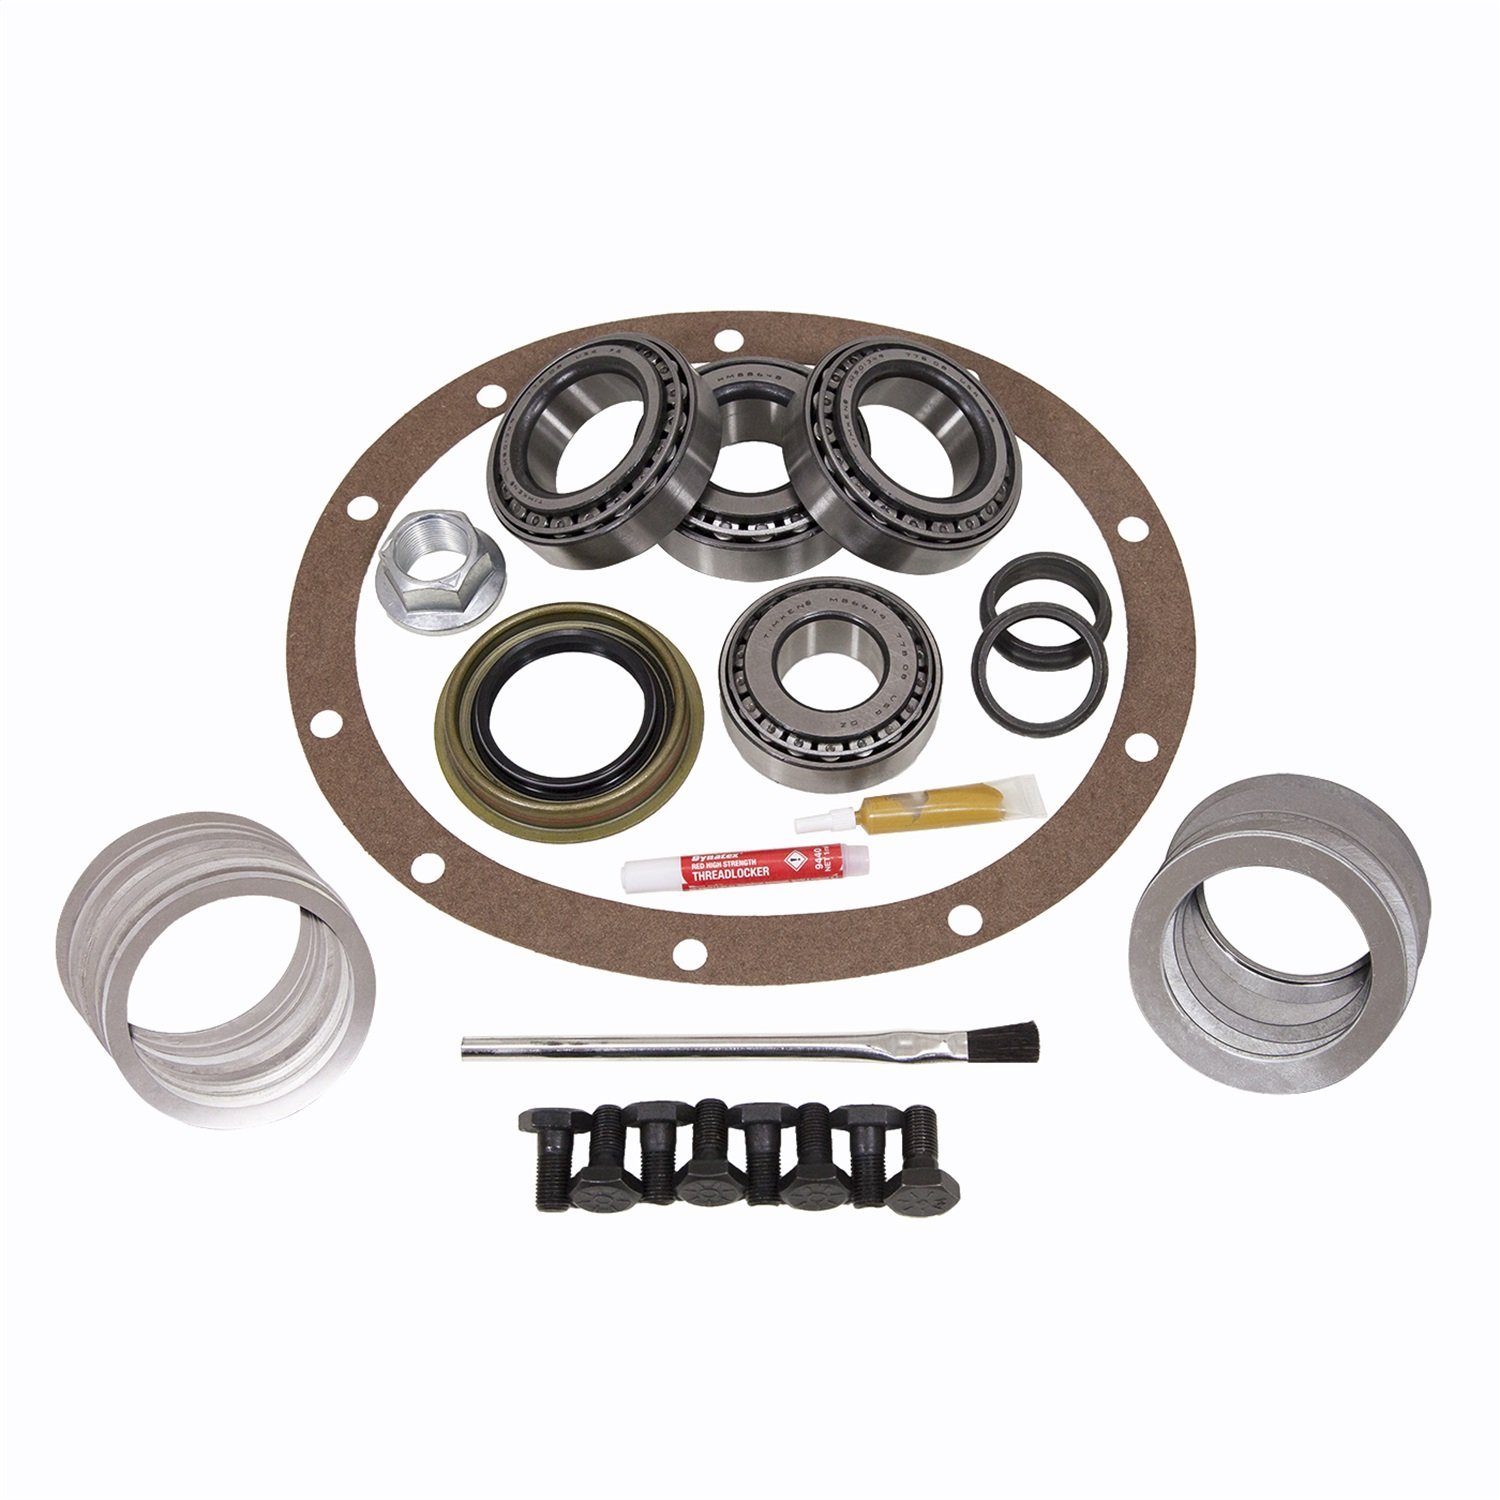 USA Standard Gear (ZK M20) Master Overhaul Kit for AMC Model 20 Differential